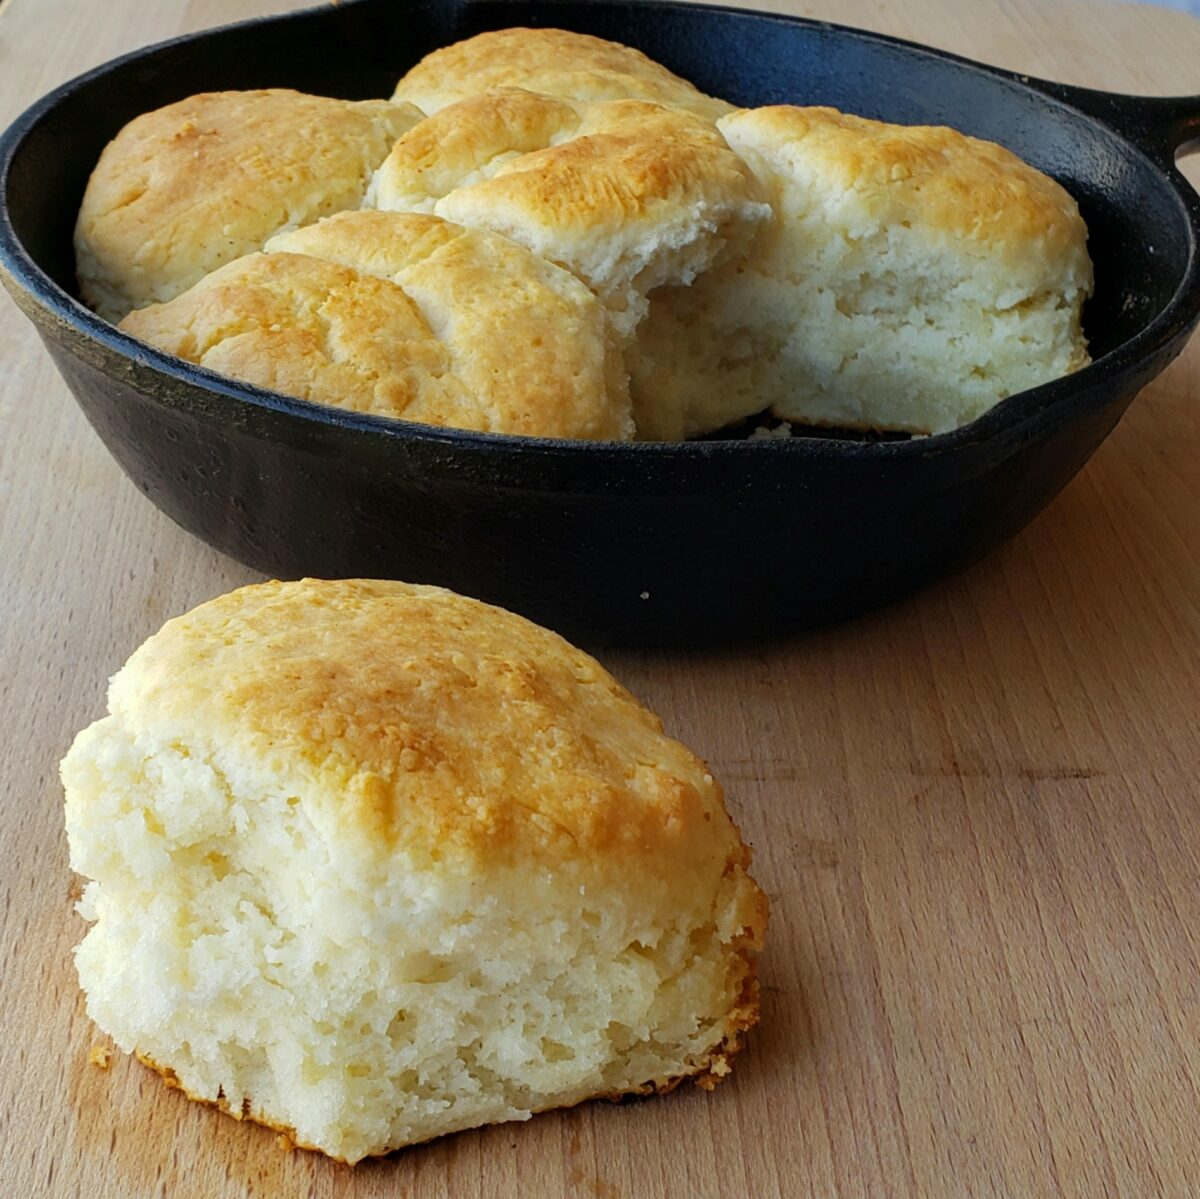 small cast iron skillet with biscuits; one biscuit on wooden surface